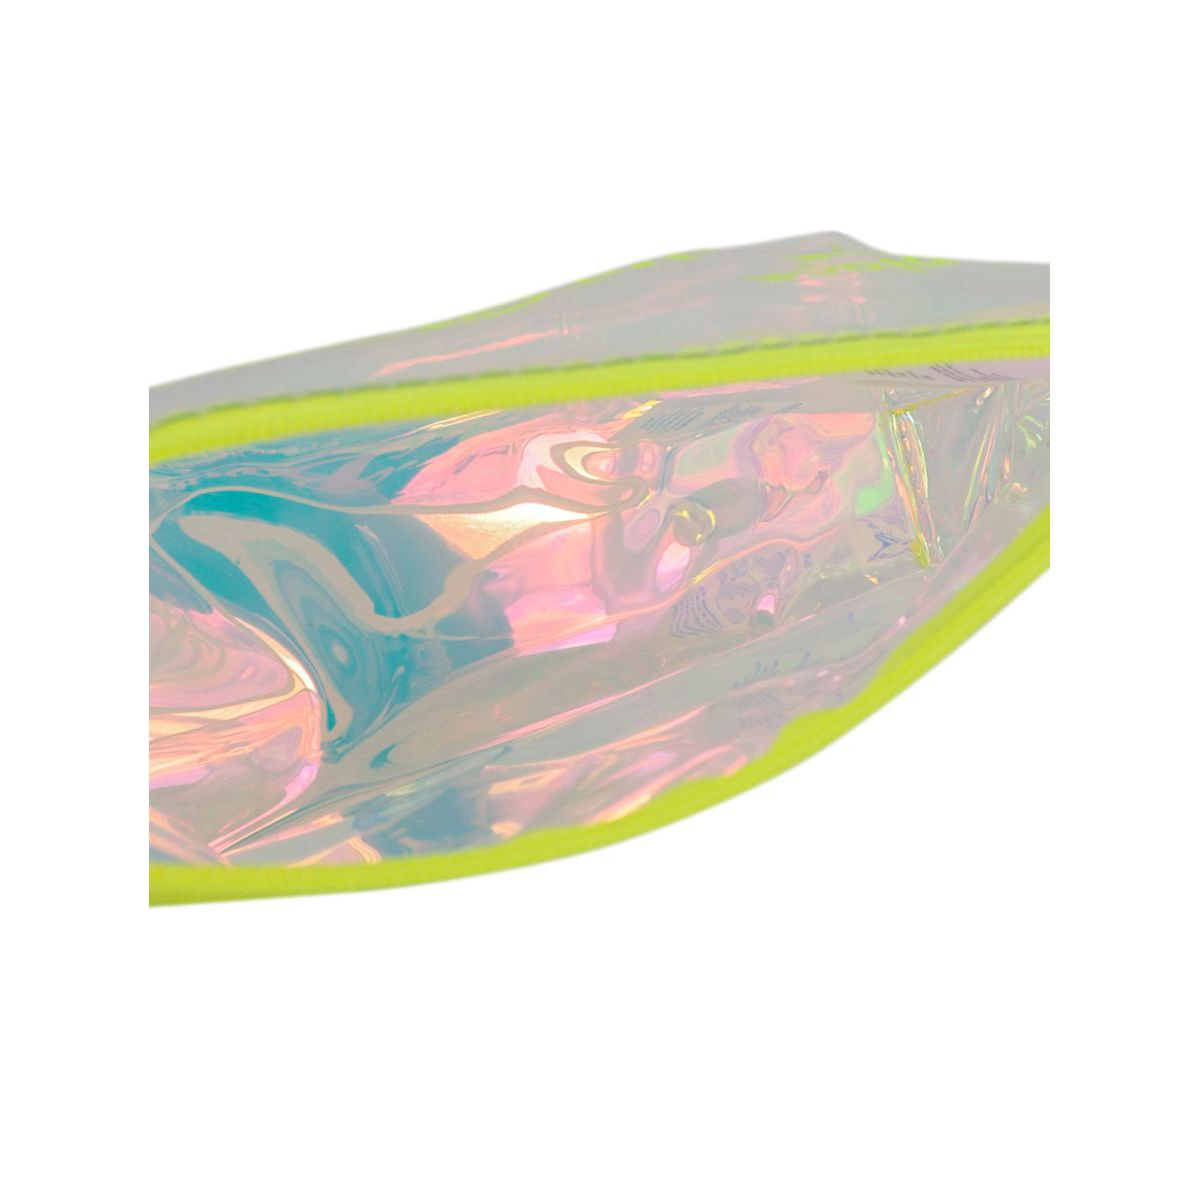 Clutch bag in PVC Aline with fluorescent print Fluo yellow MC2 Saint Barth